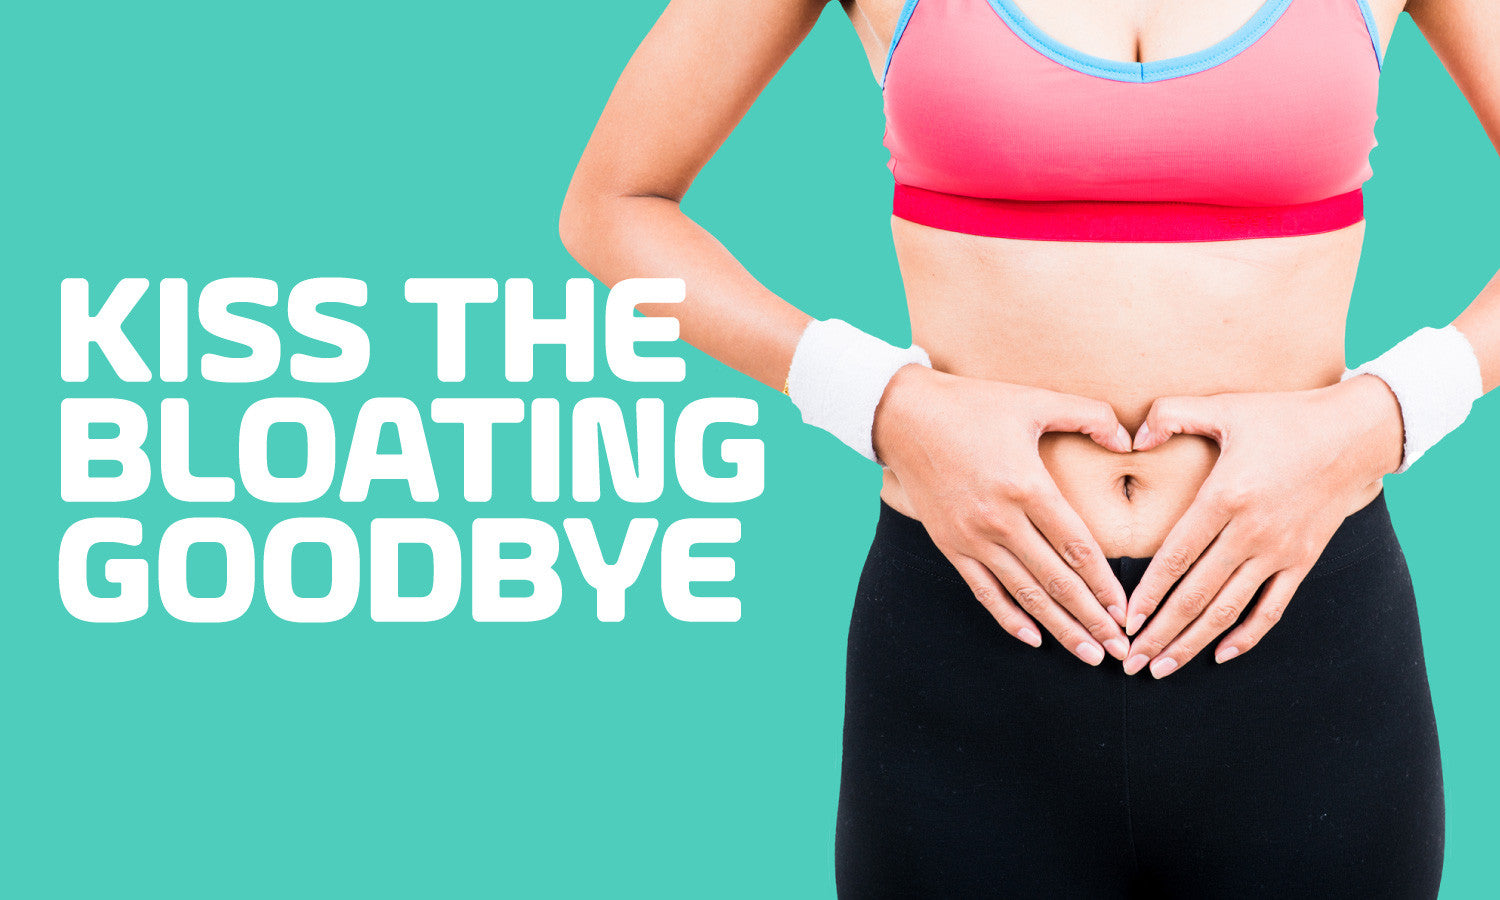 Kiss The Bloating Goodbye